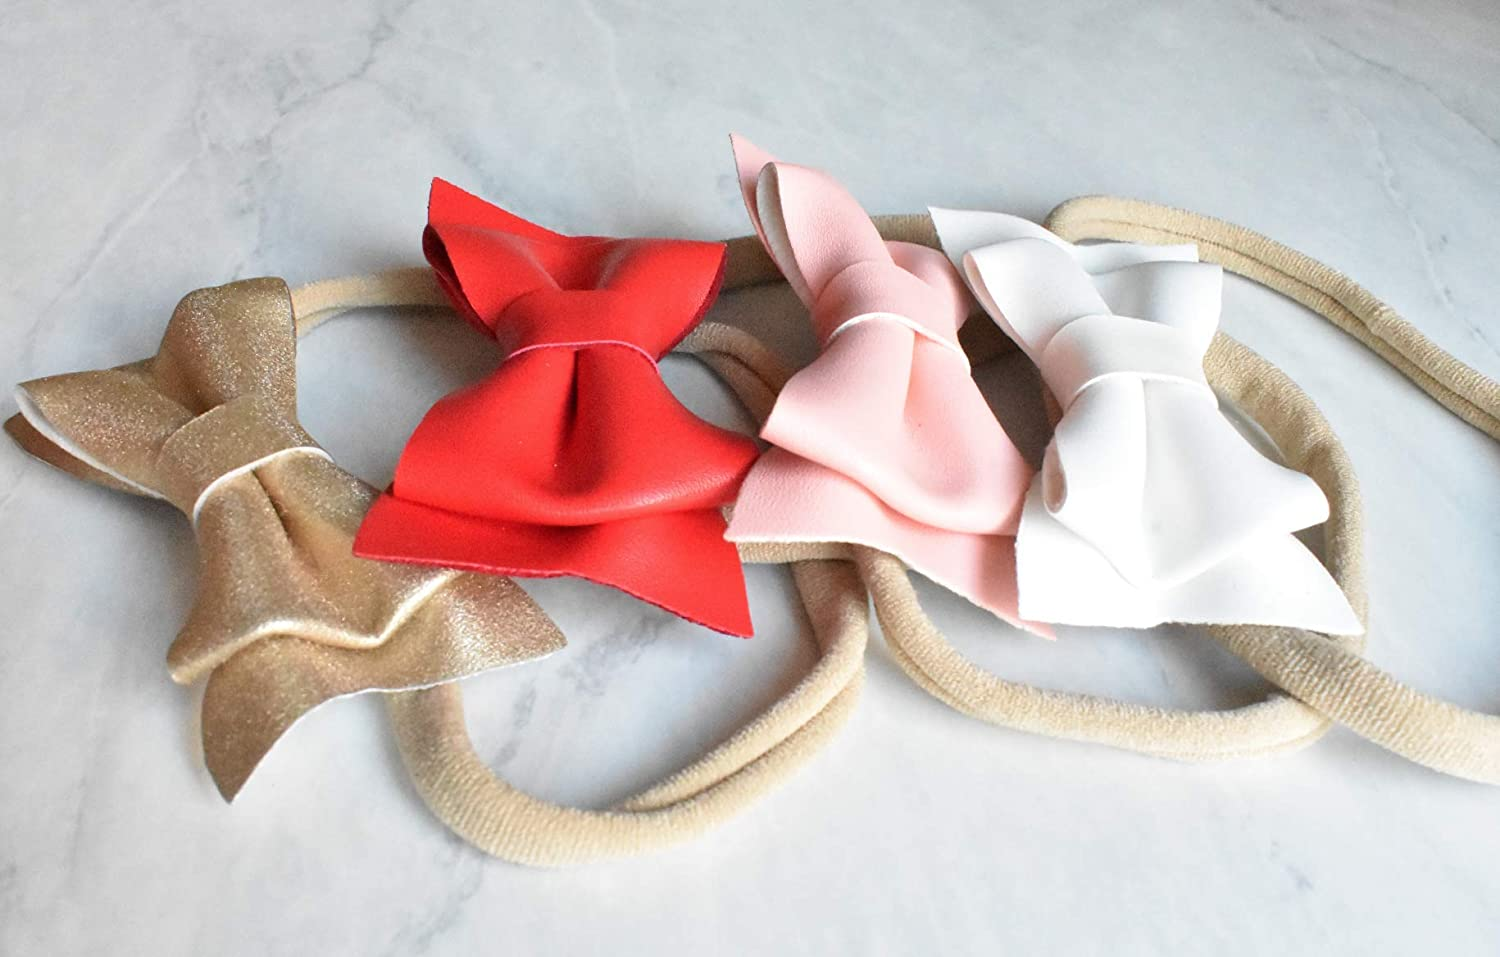 Baby Toddler Mixed Set of 4 or 7 California Tot Soft /& Stretchy Nylon Headbands for Newborn Girls